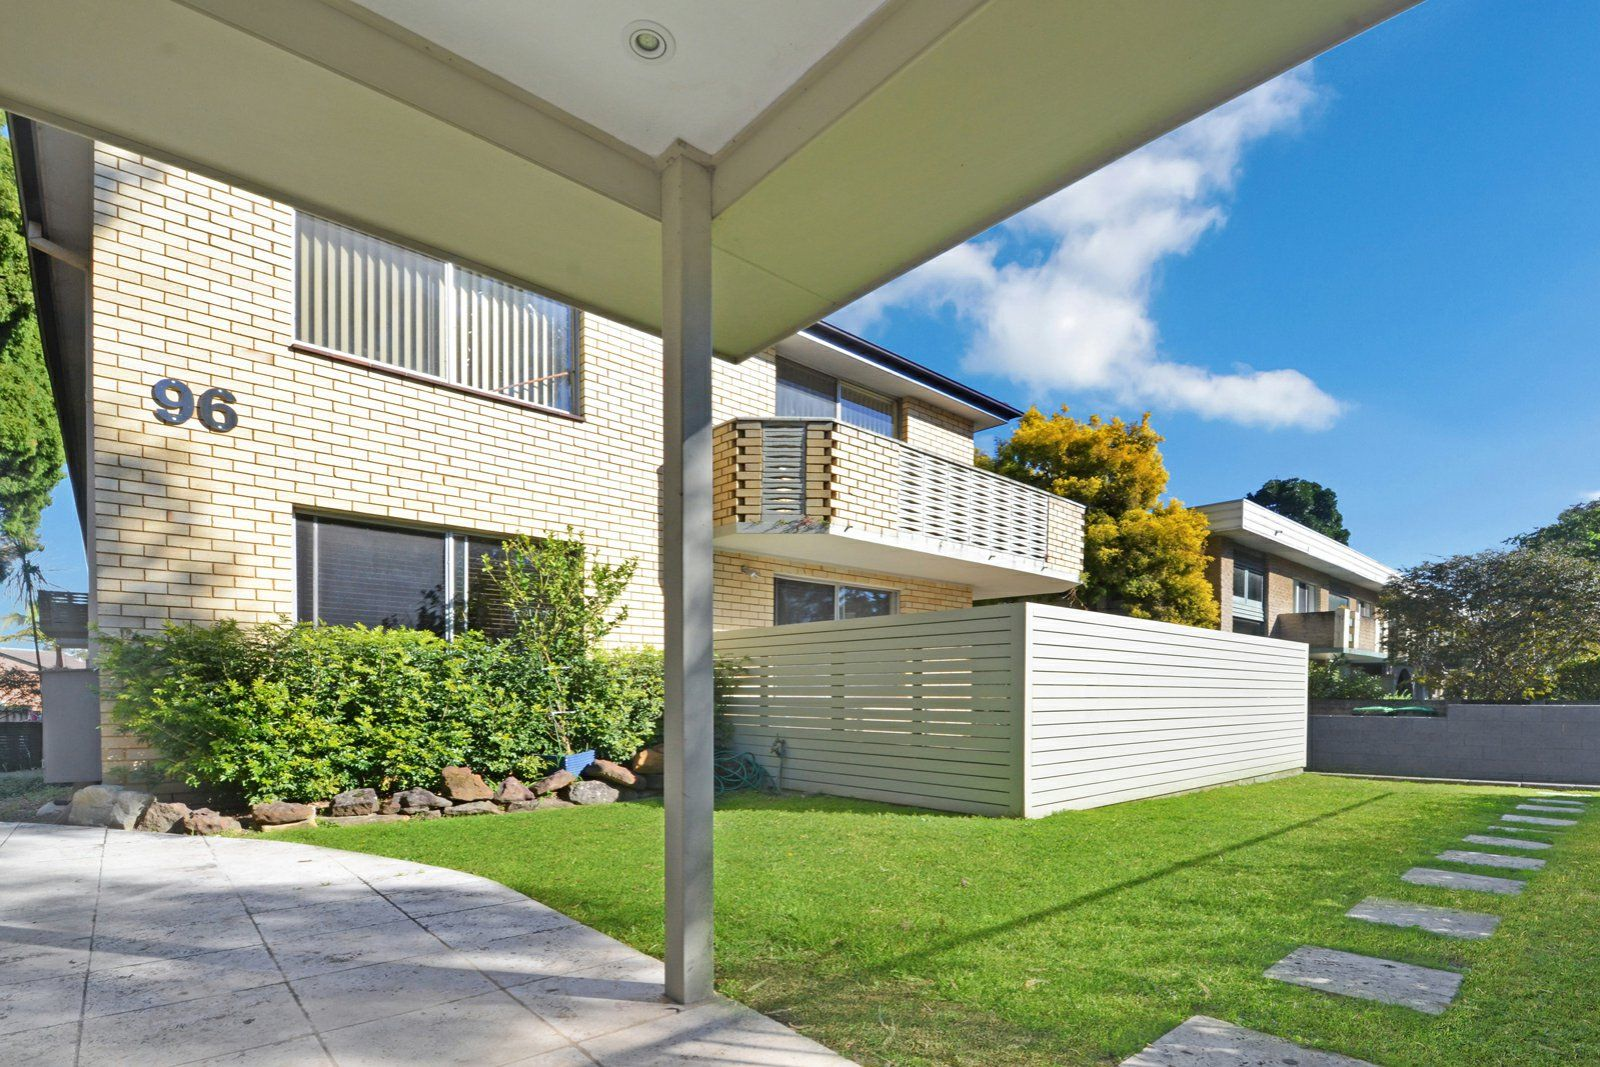 9/96 Burns Bay Rd, Lane Cove NSW 2066, Image 0